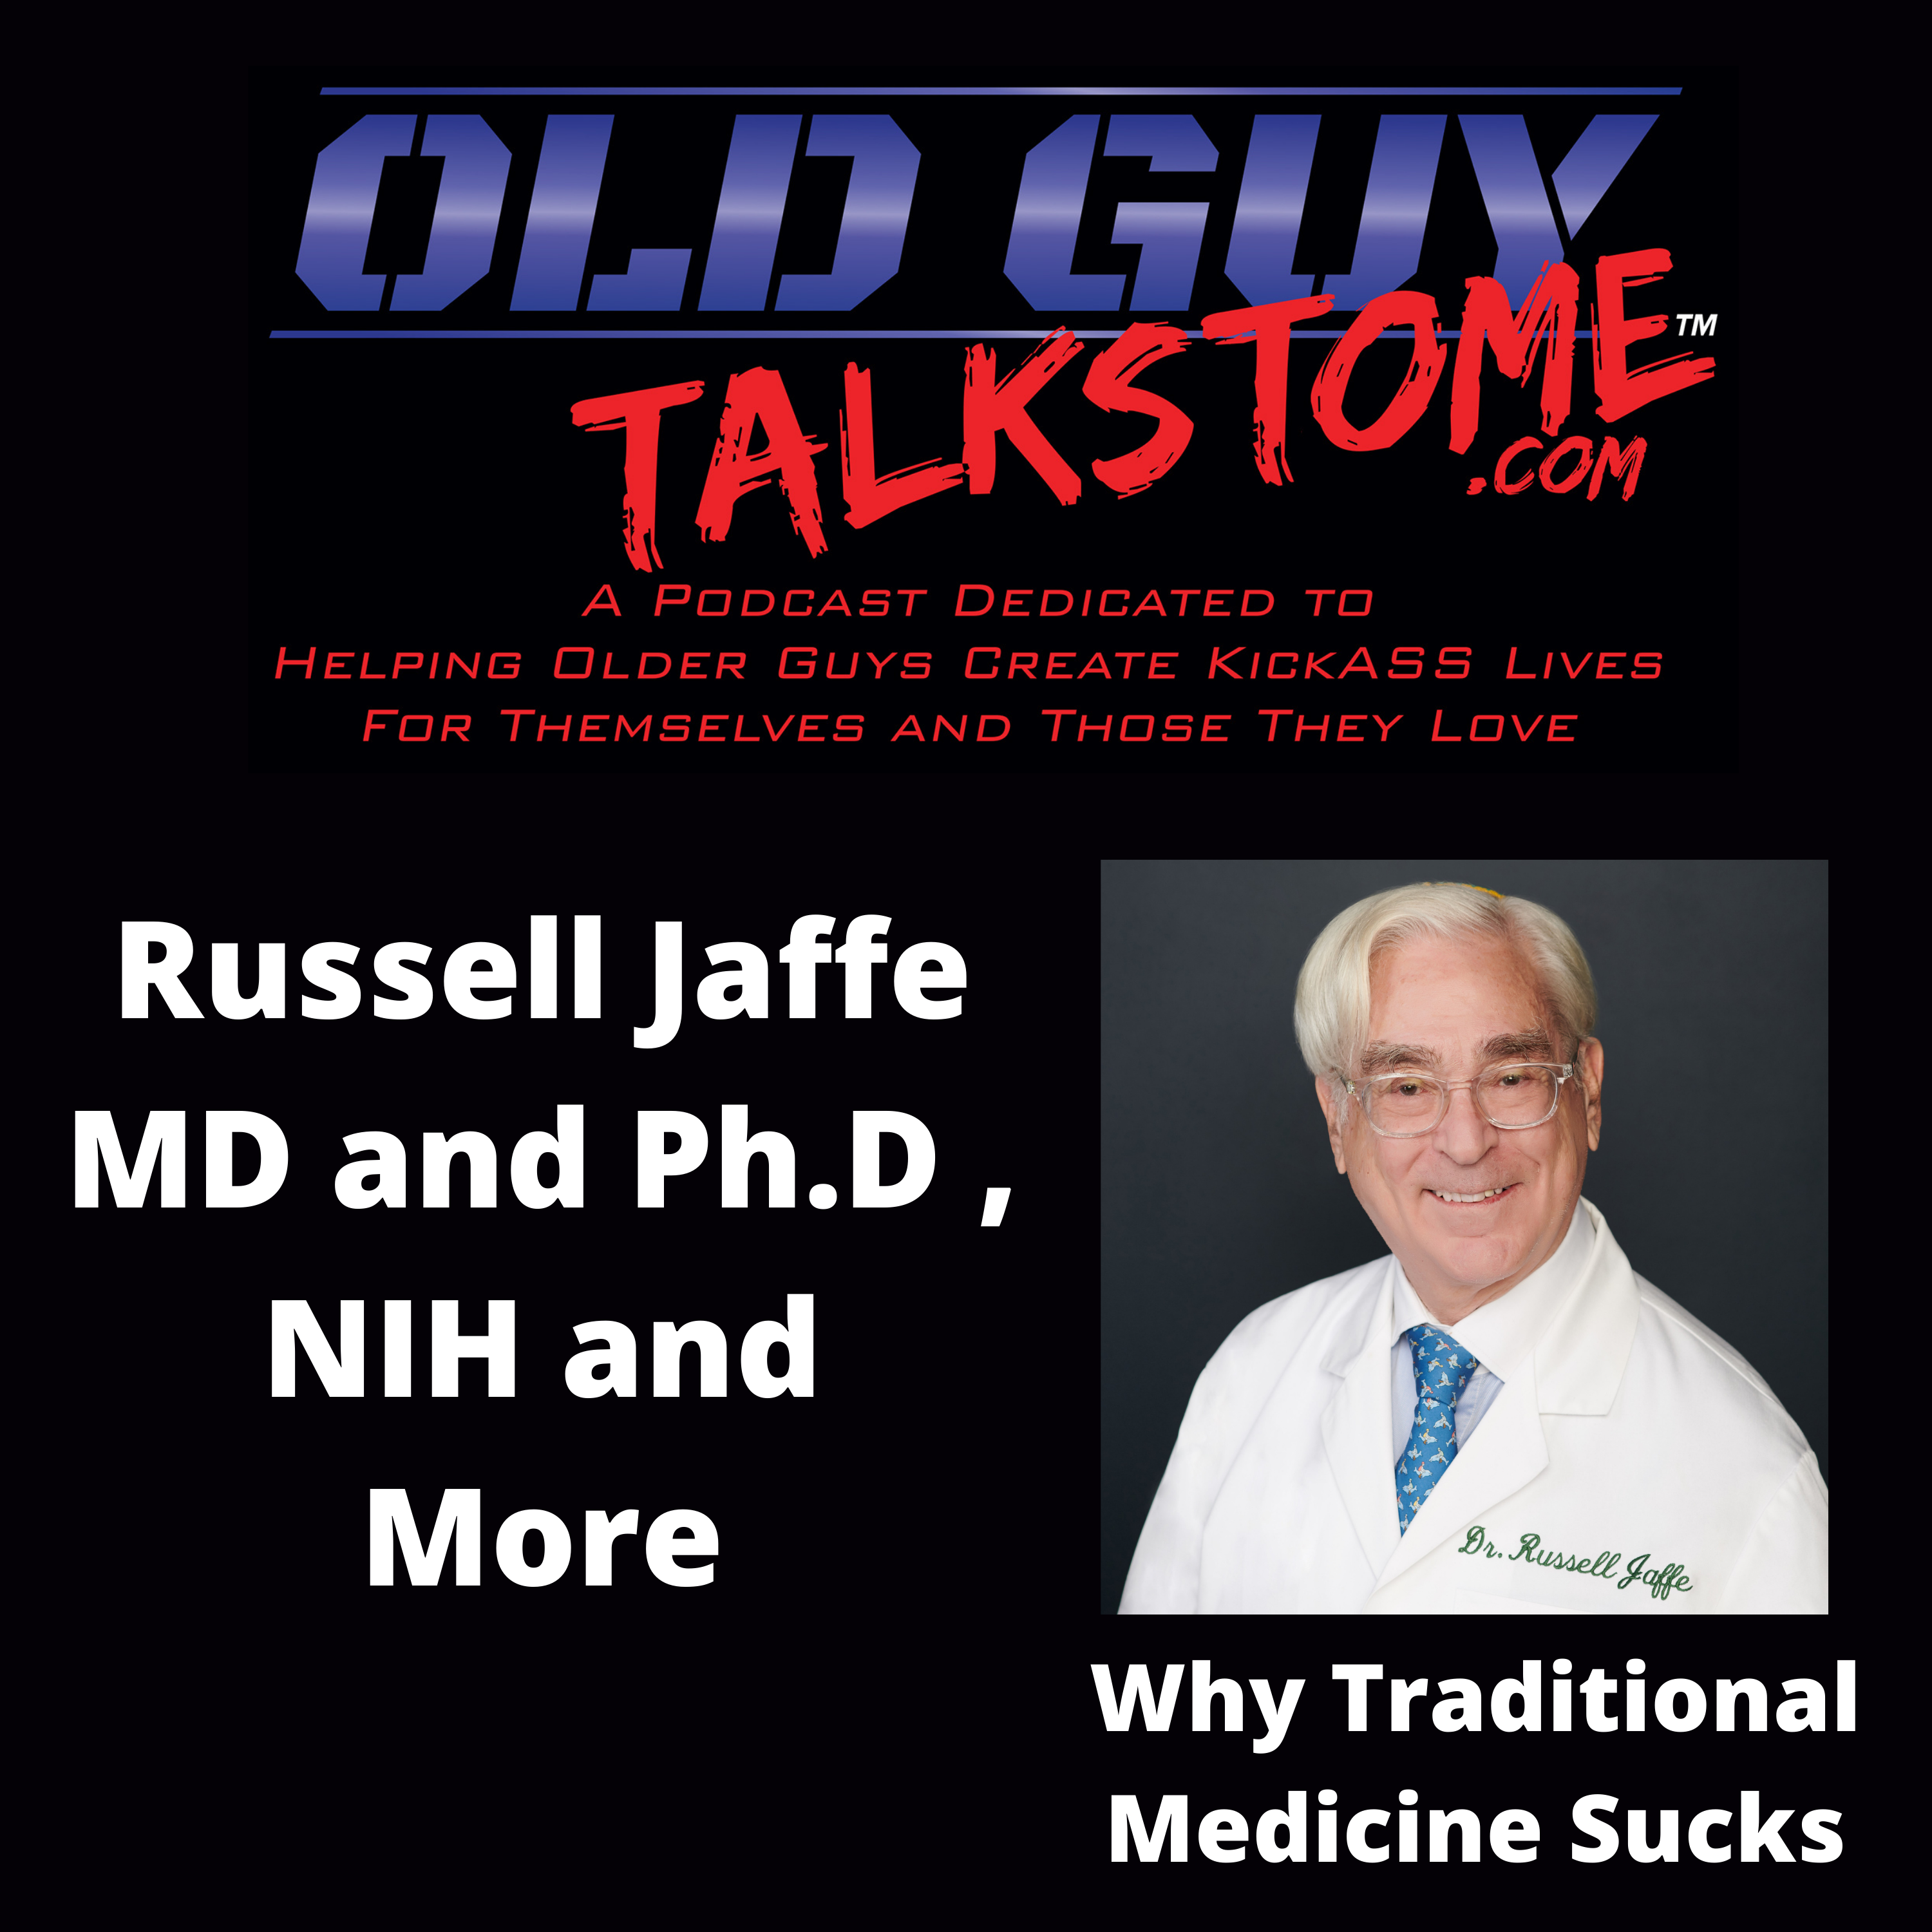 OldGuyTalksToMe - RUSSELL JAFFE MD PhD, NIH RESEARCH SCIENTIST